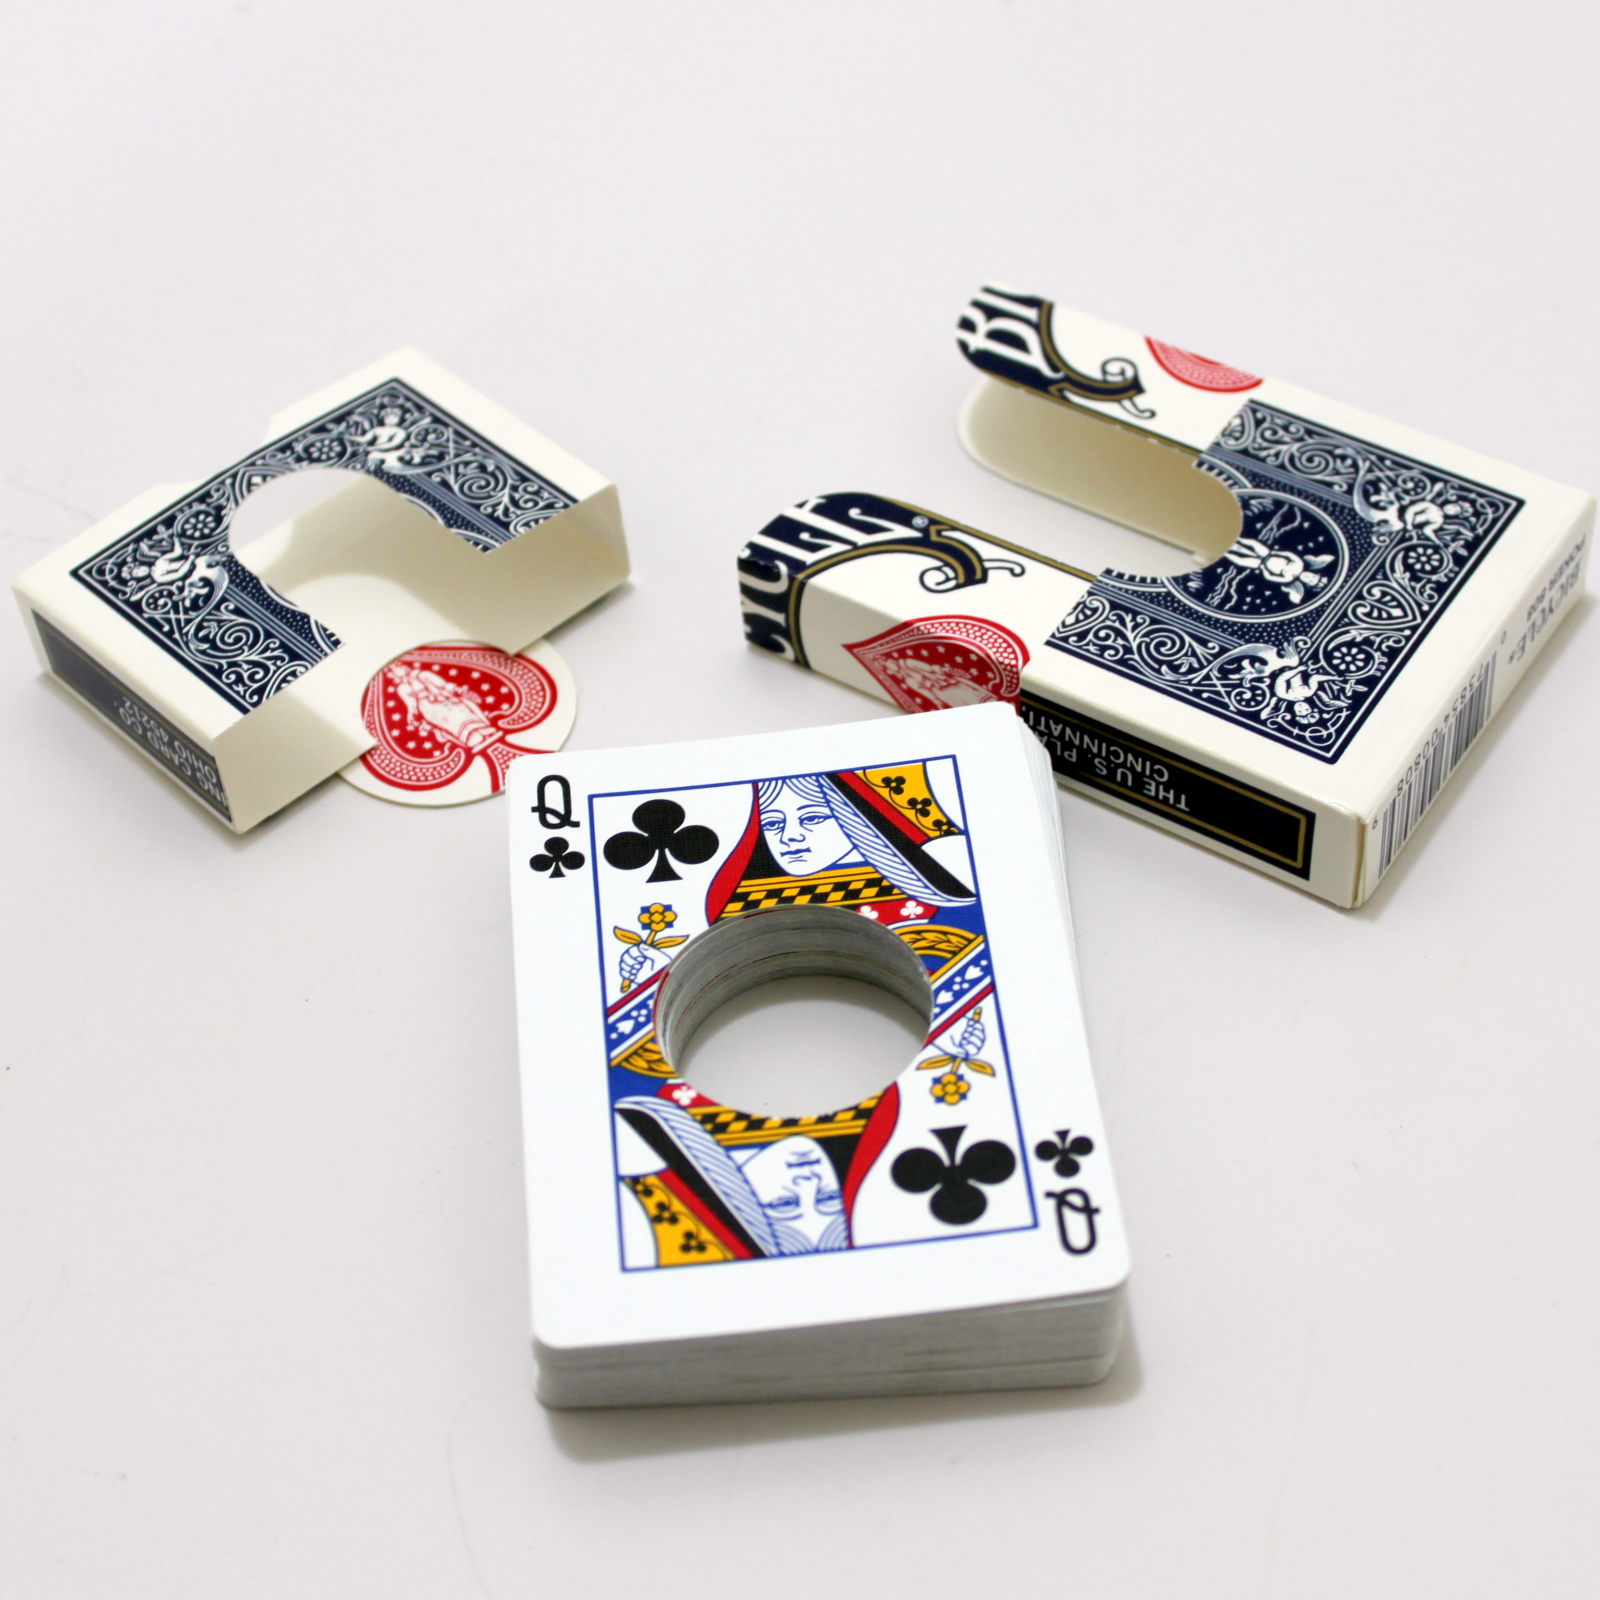 Bromley Guillotine Deck by Rob Bromley